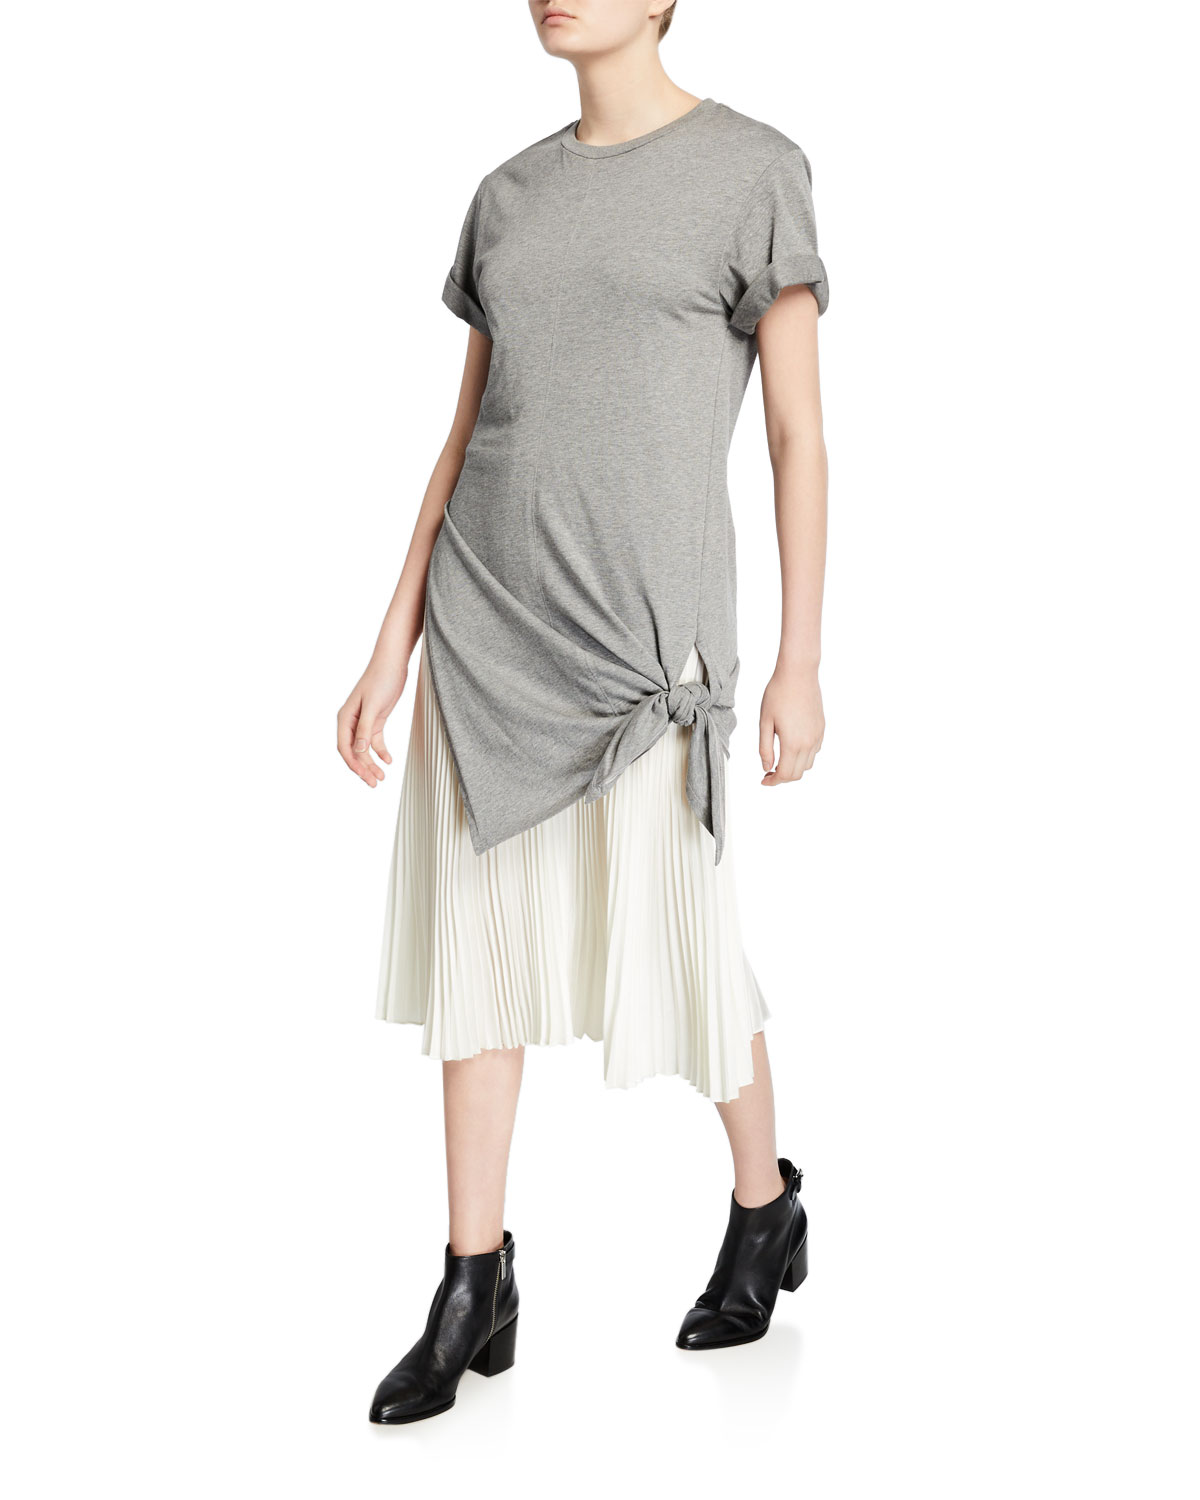 3.1 Phillip Lim Dresses SIDE-TIE CREWNECK TEE DRESS WITH PLEATING